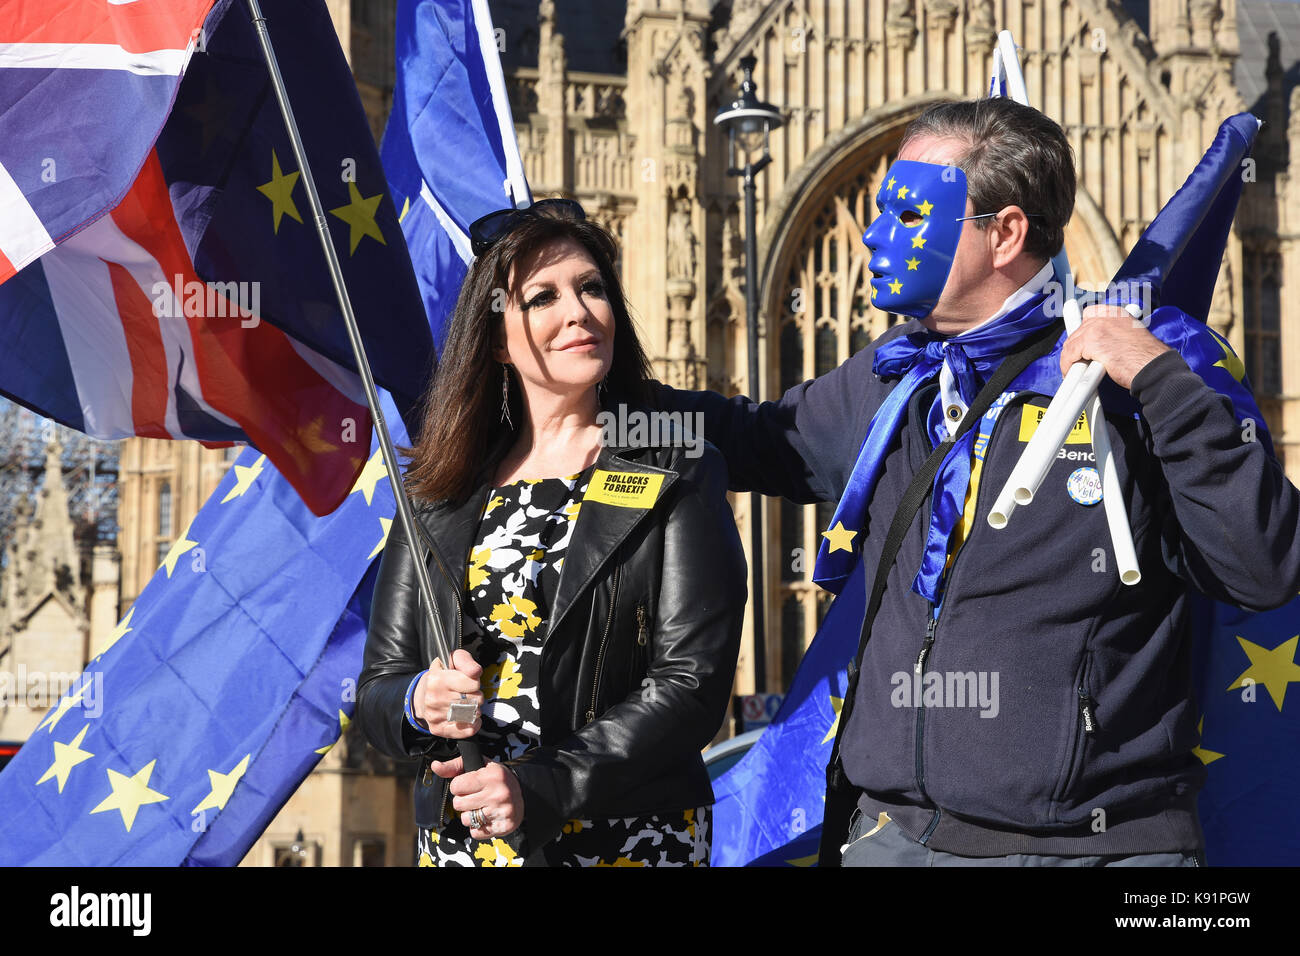 The 3 Million,The Citizen's Rally,Anti Brexit Protest,Houses of Parliament,London.UK - Stock Image